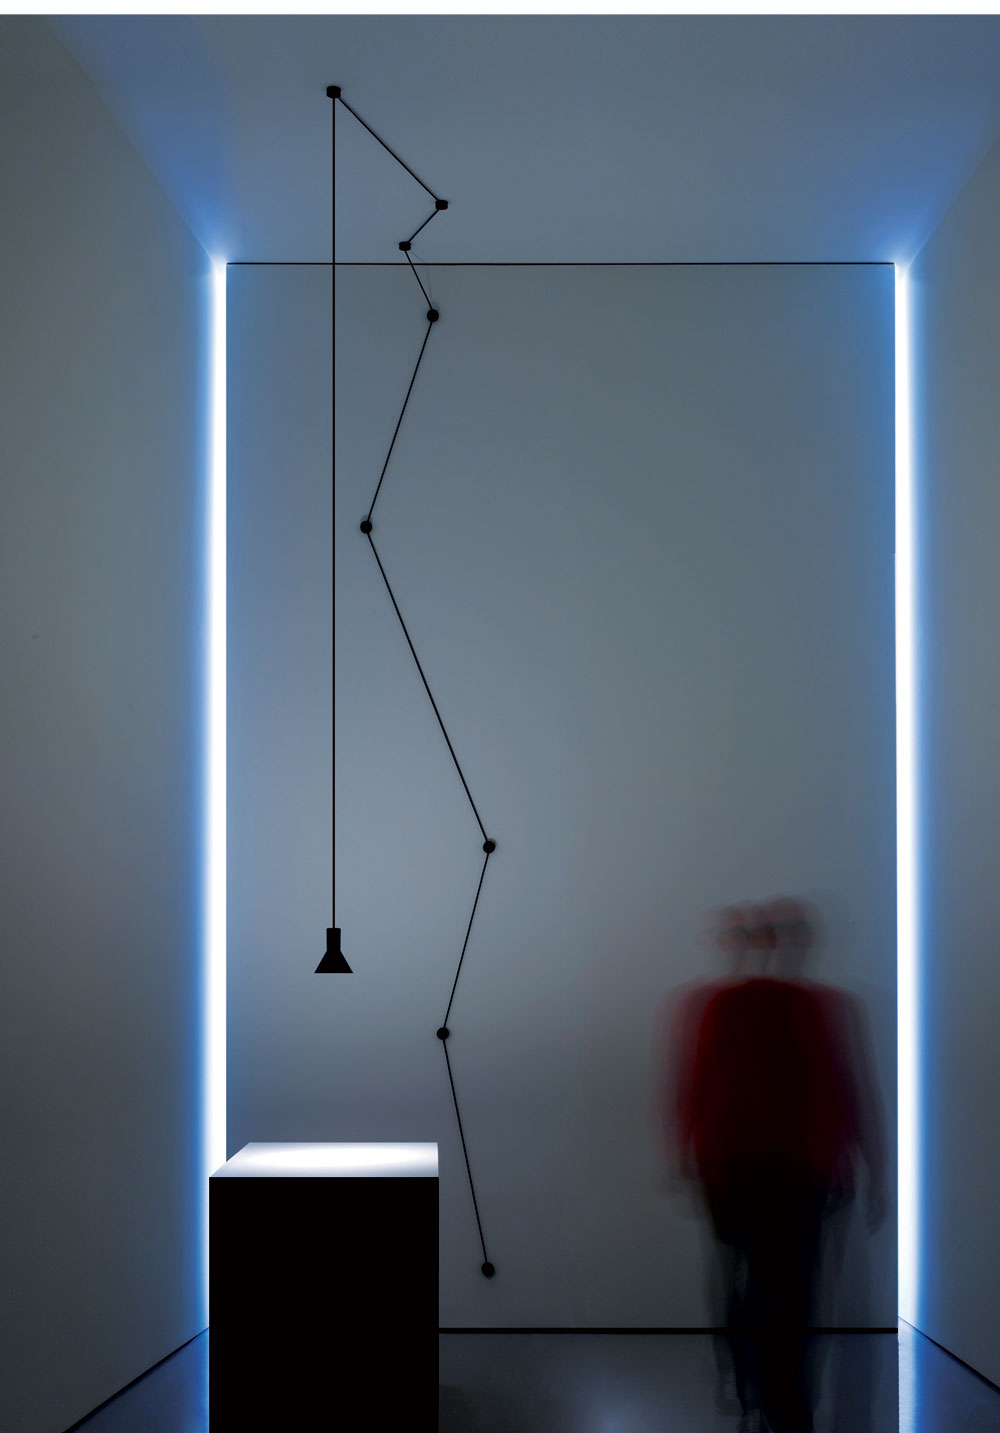 N-EURO Suspension Lamp by Davide Groppi & Beppe Merlano.